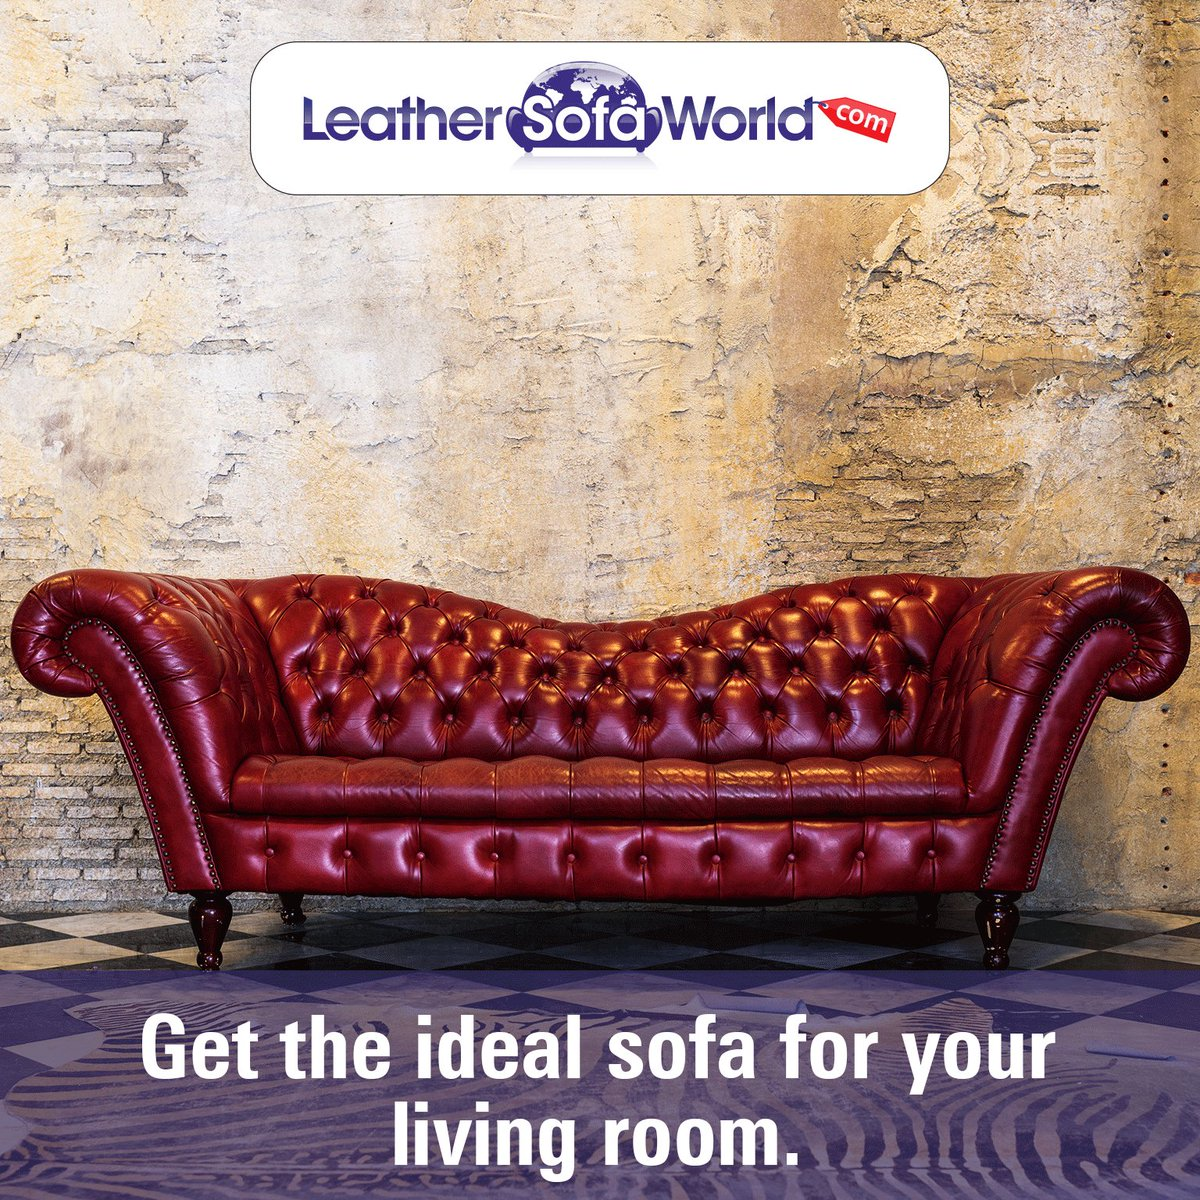 Leather Sofa World On Twitter At Leathersofaworld You Ll